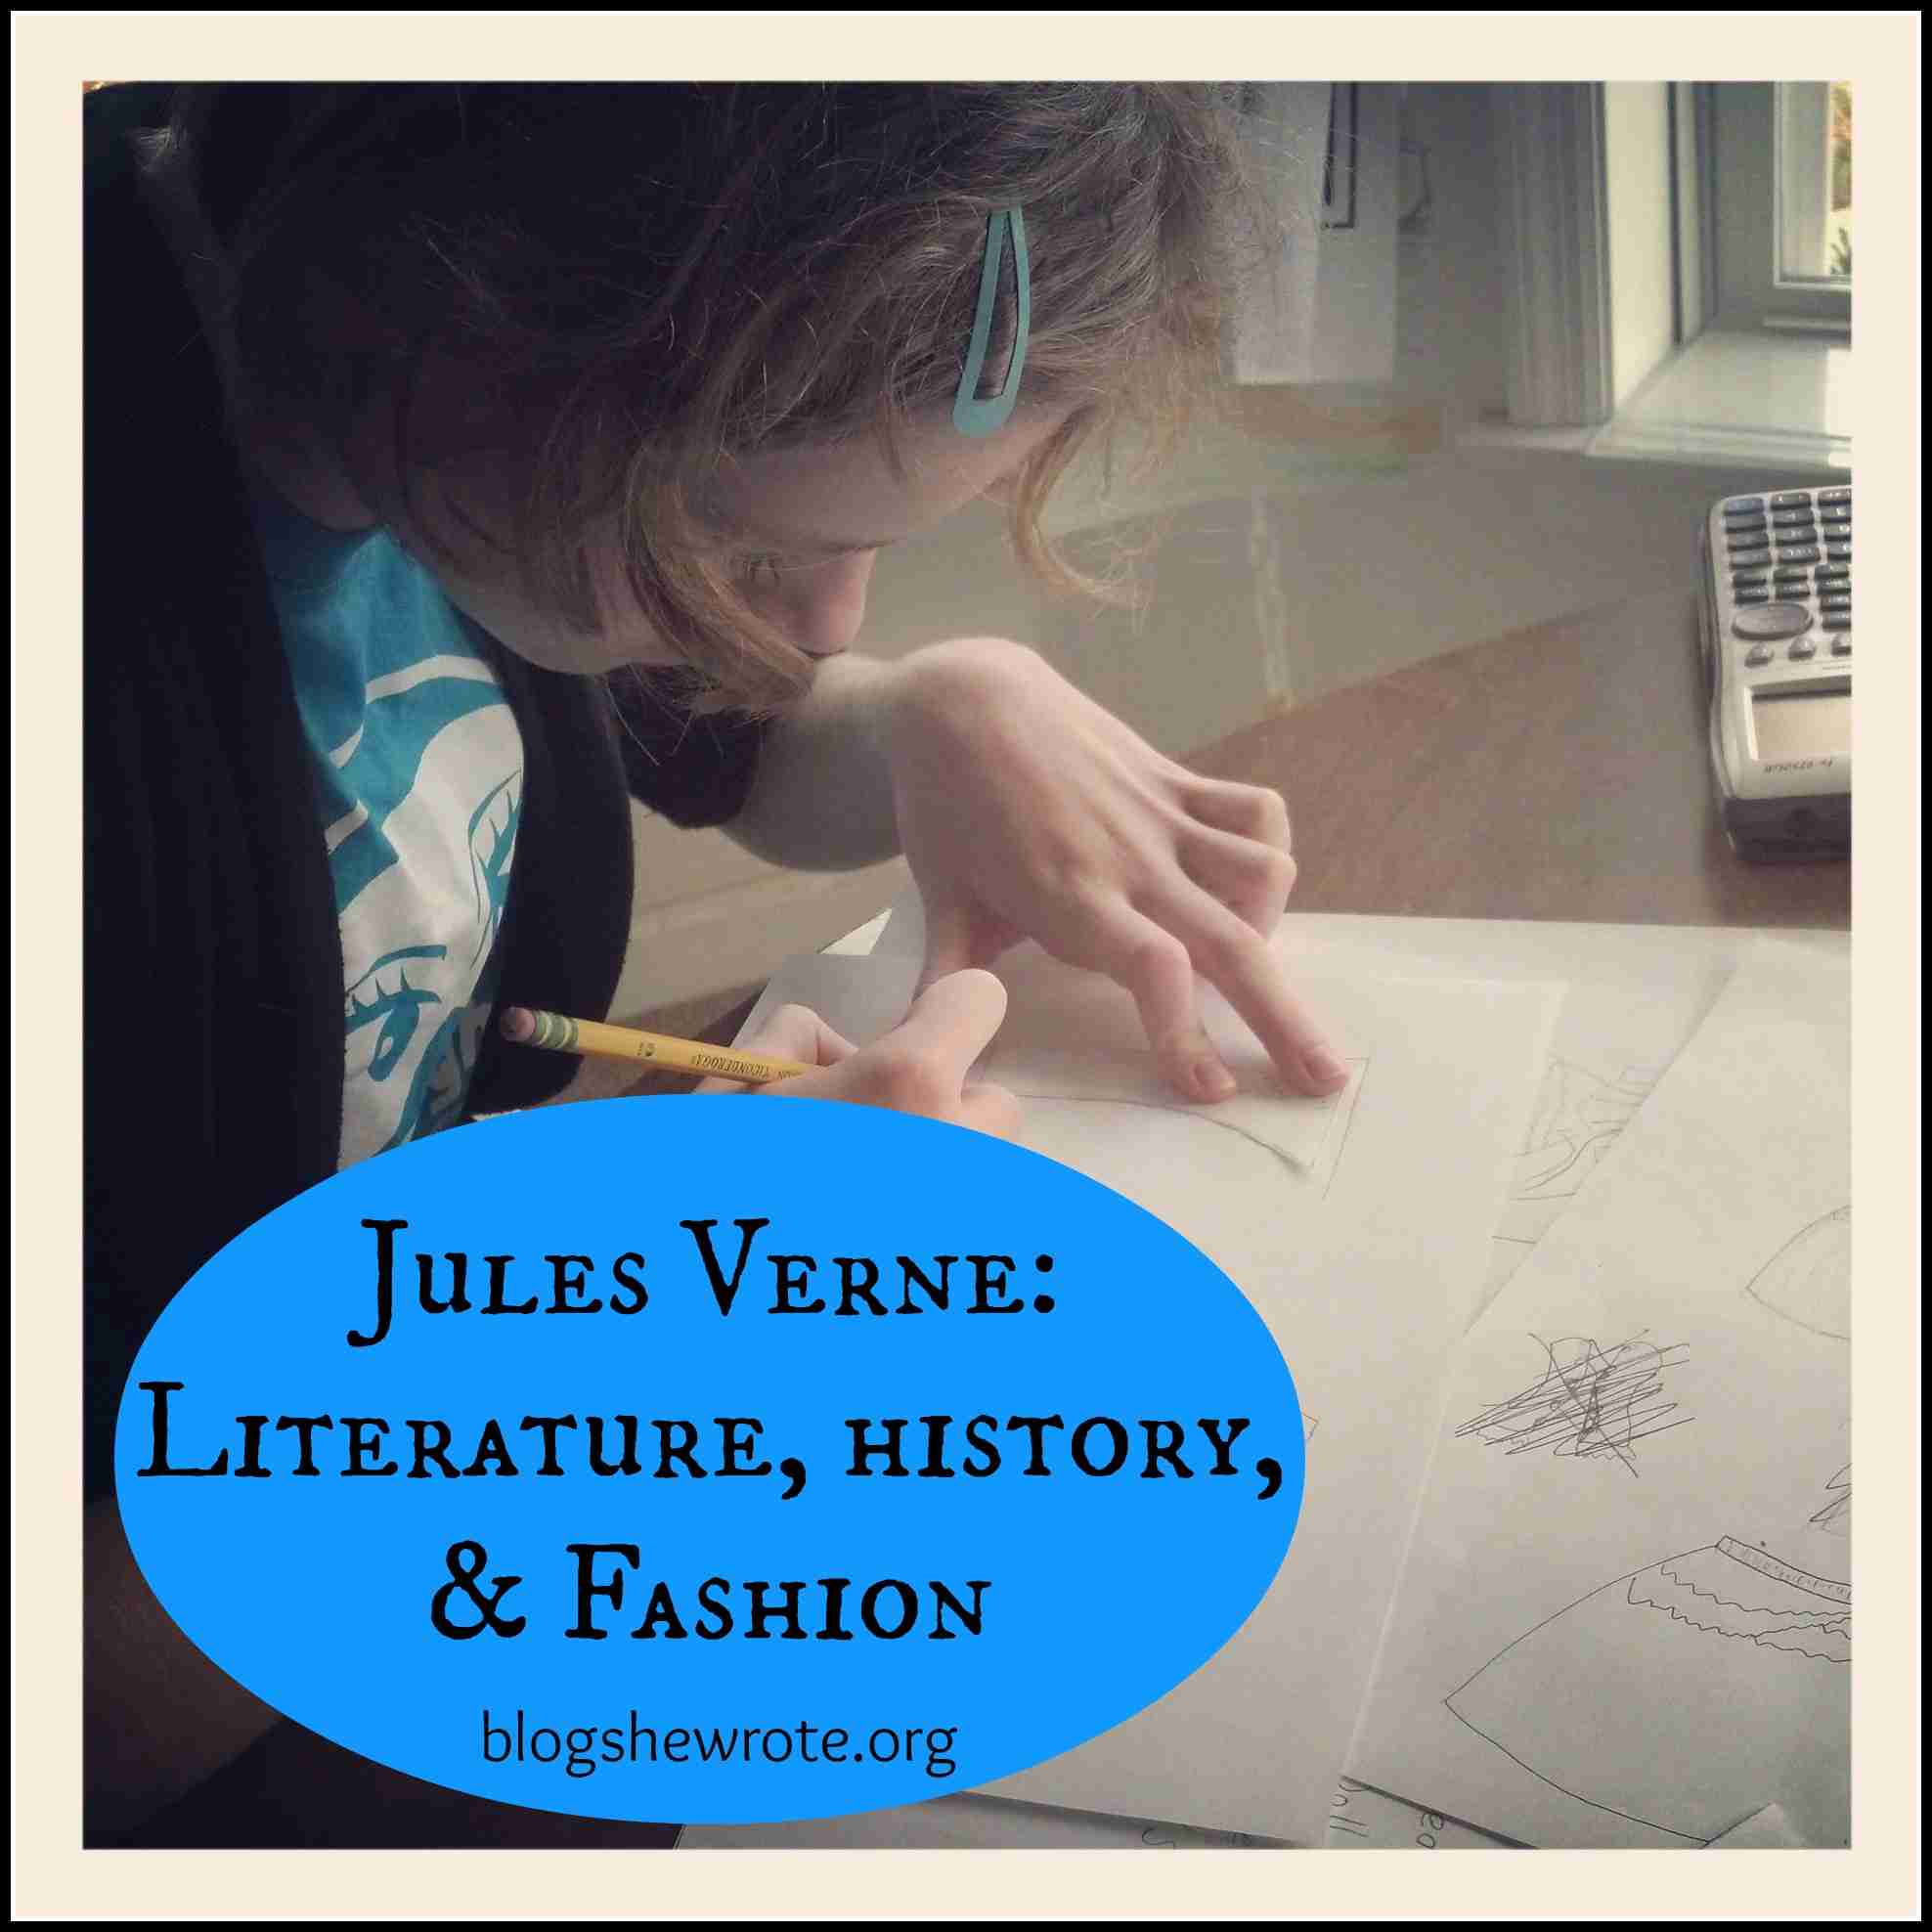 Blog, She Wrote: Jules Verne Literature, History, & Fashion